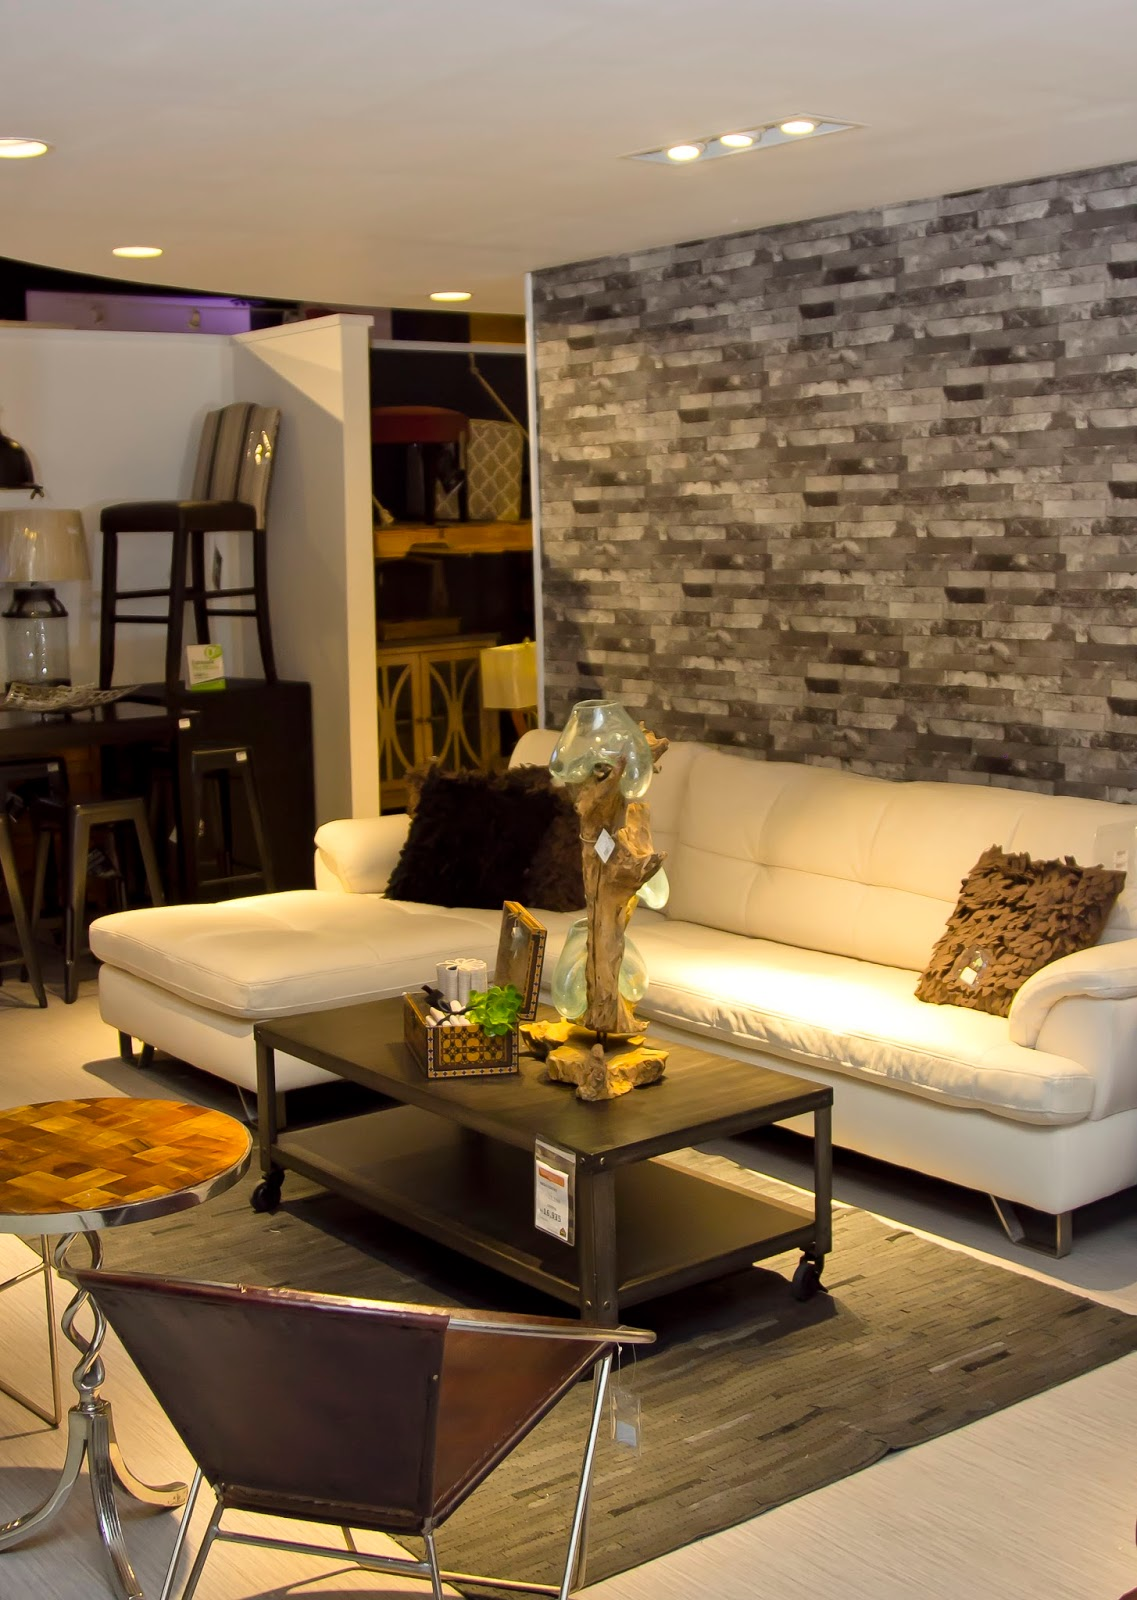 Ashley Furniture HomeStore celebra 70 años con Urbanology - NEWSLIFERD